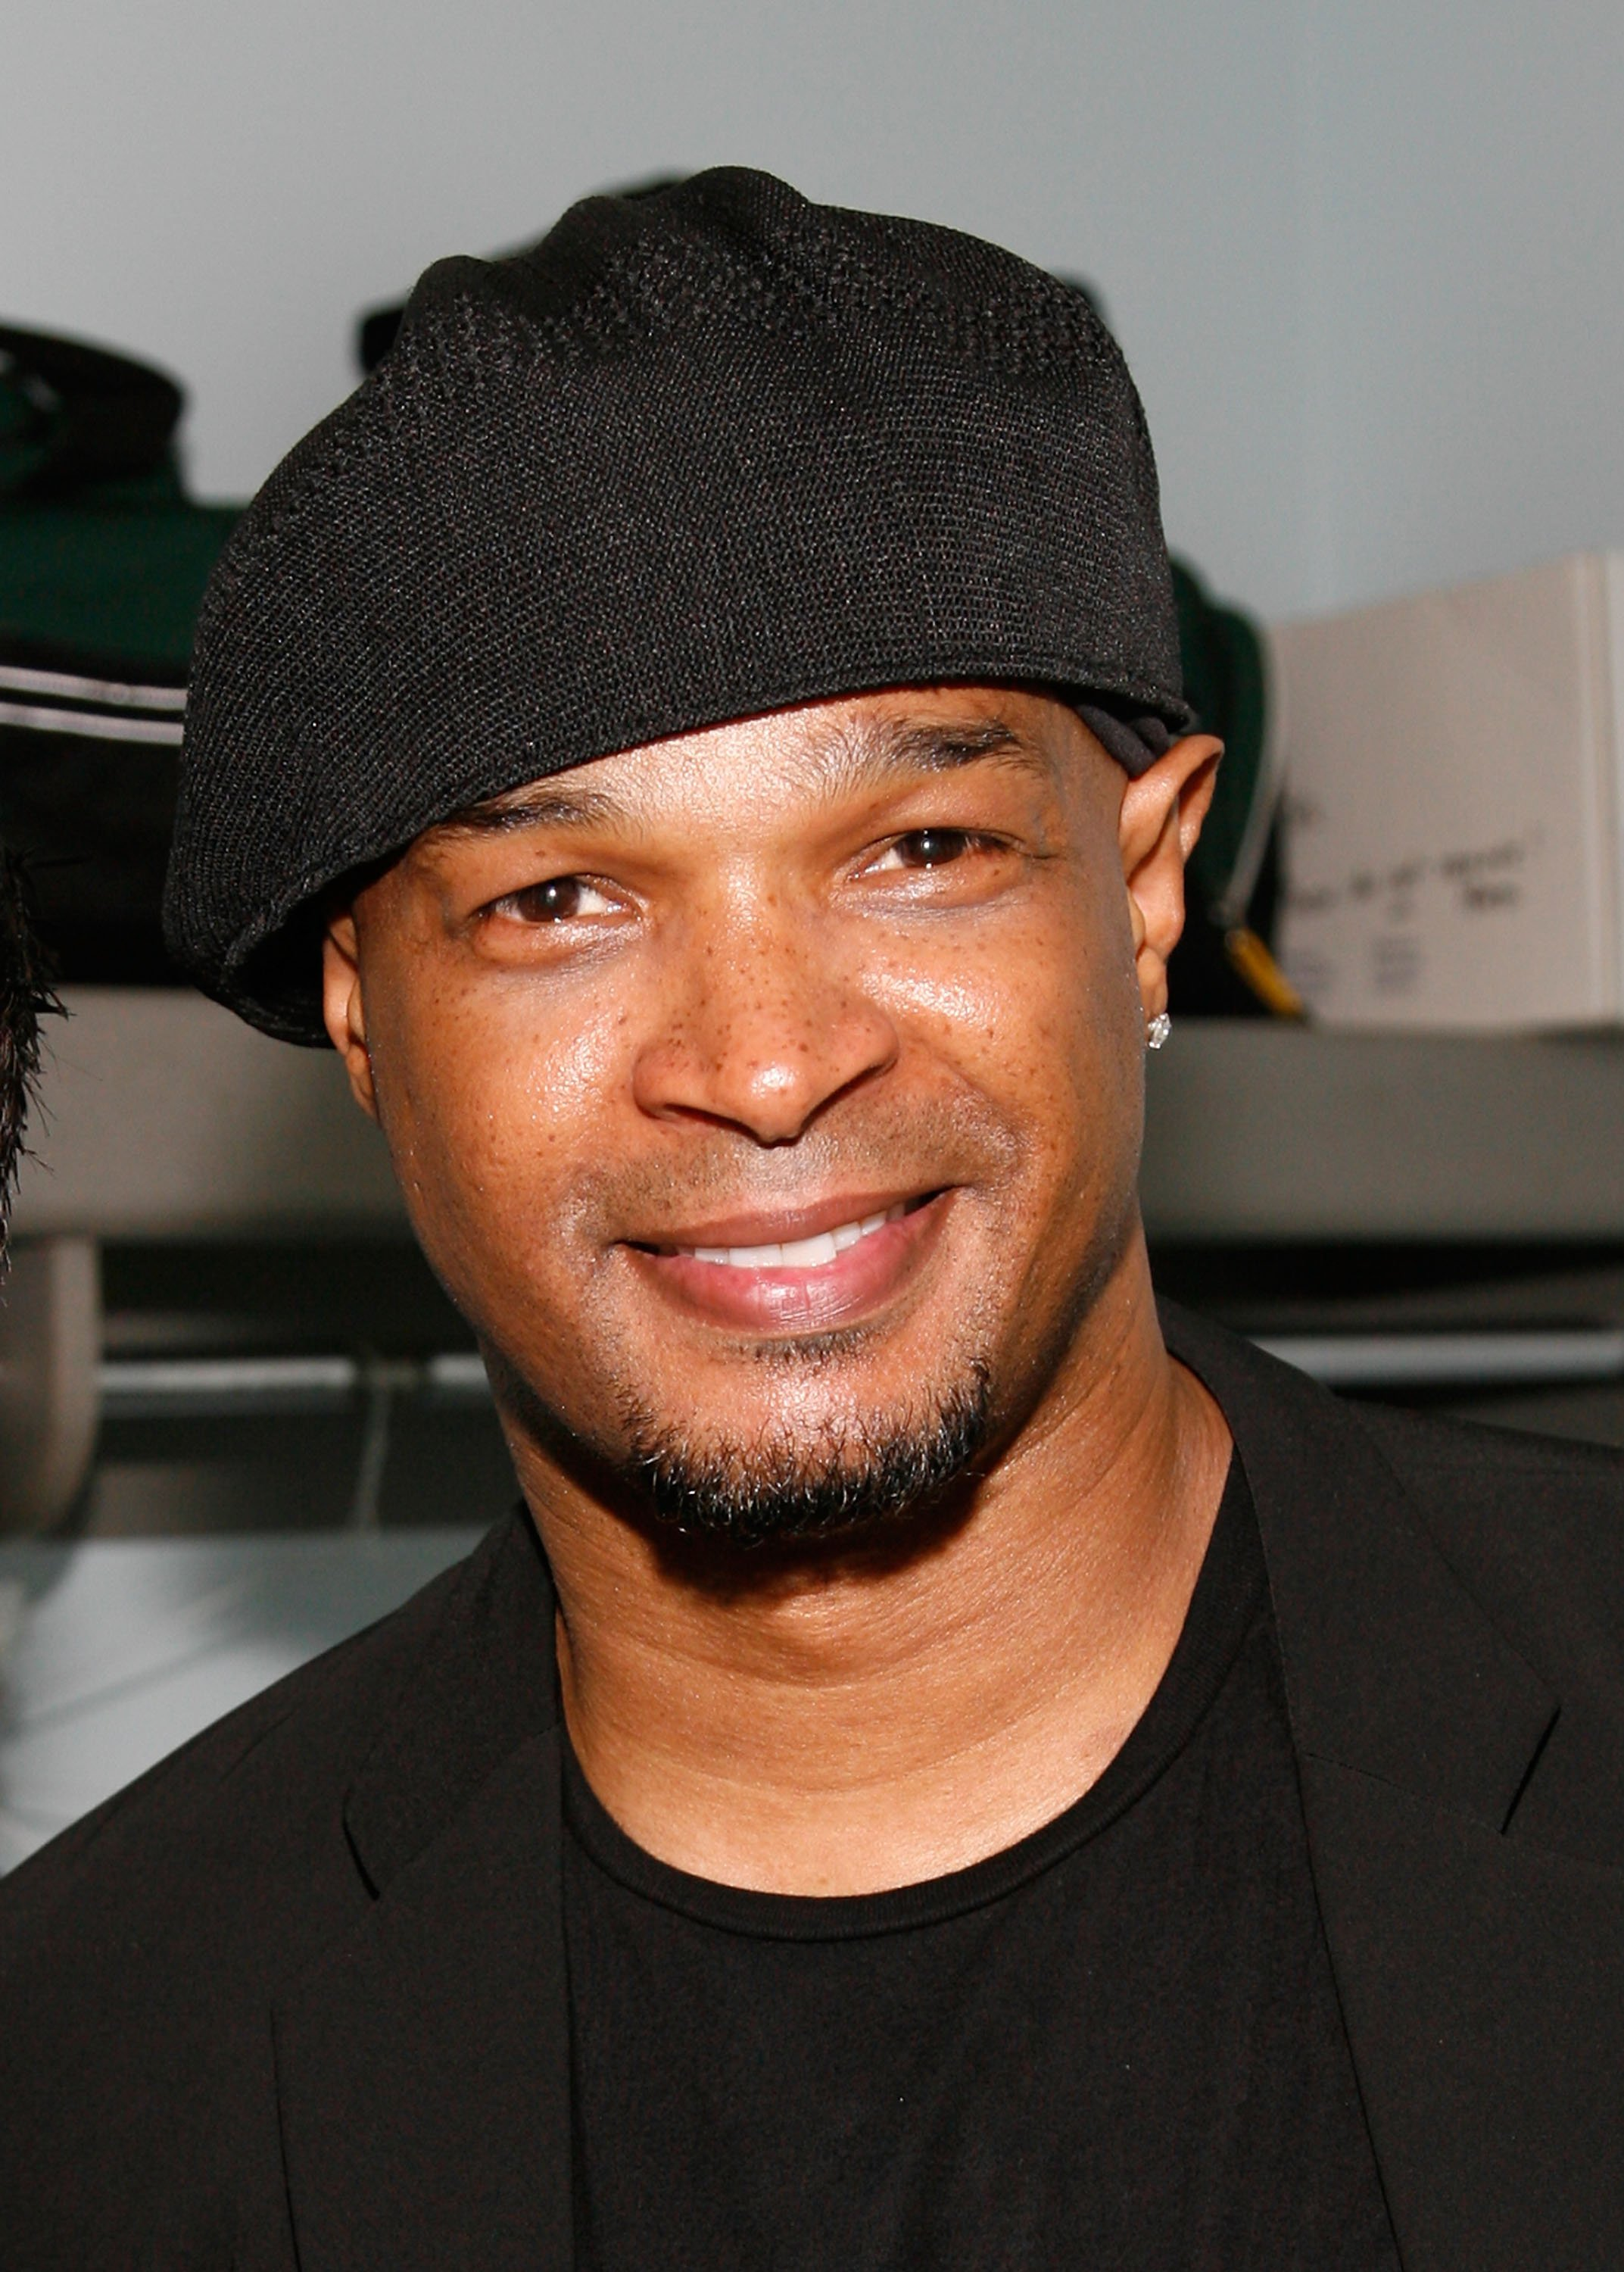 Comedian Damon Wayans backstage at Theatre St. Denis during the Just for Laughs Festival on July 20, 2007 | Photo: Getty Images